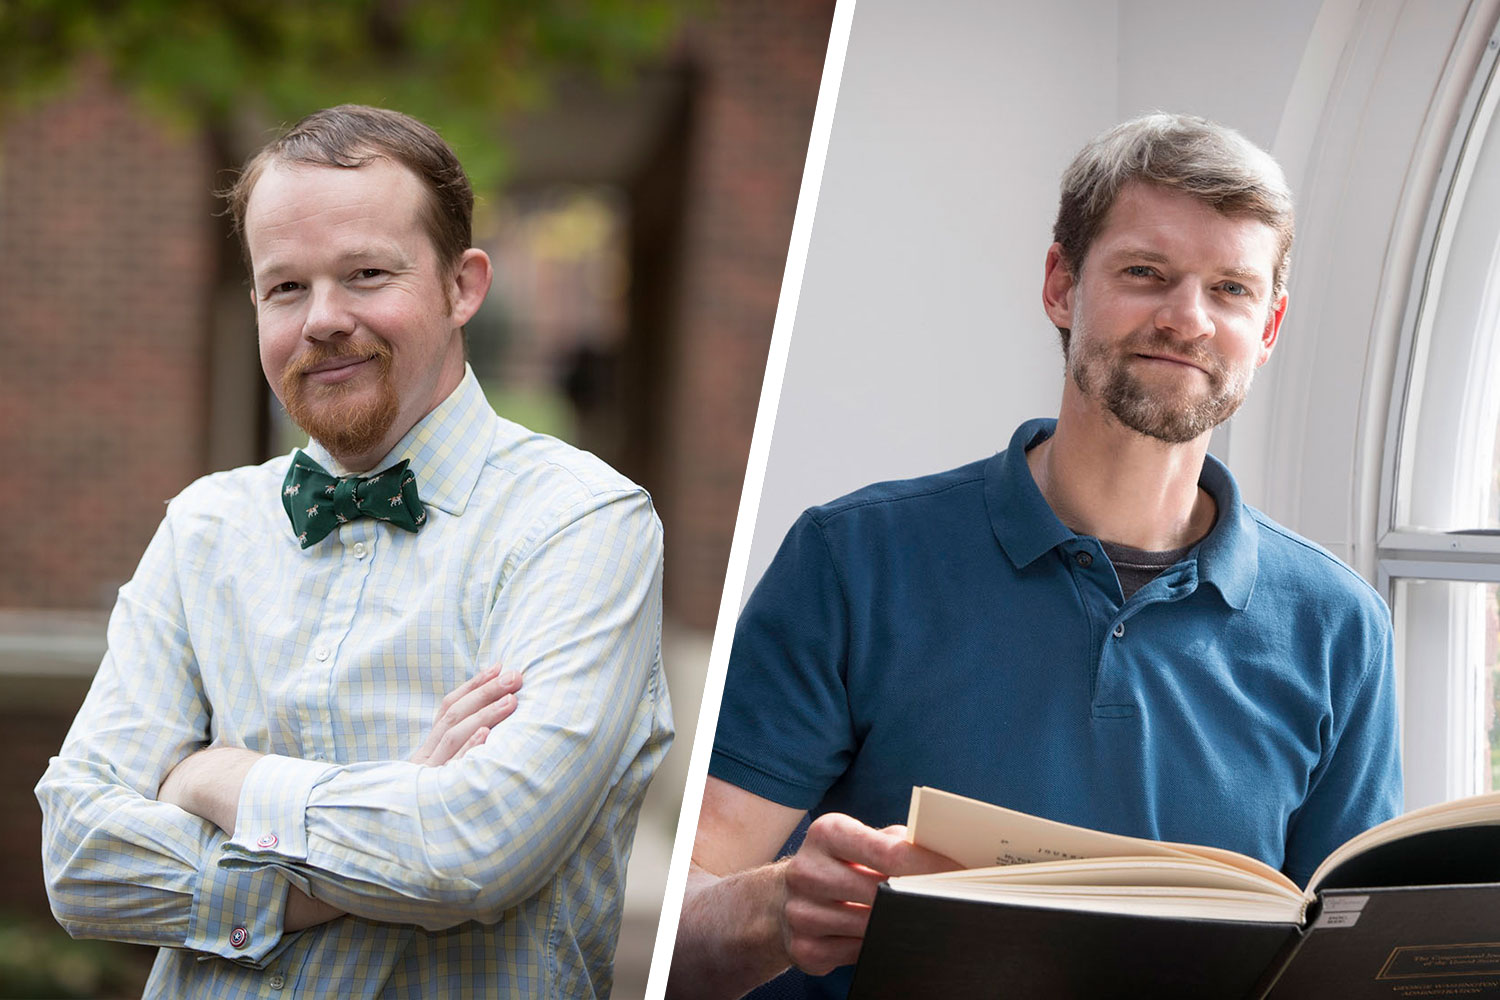 Waitman Beorn, left, is a lecturer in UVA's Corcoran Department of History and a consultant to the U.S. Holocaust Memorial Museum. Drew Macqueen is a GIS specialist in UVA's Scholars' Lab.